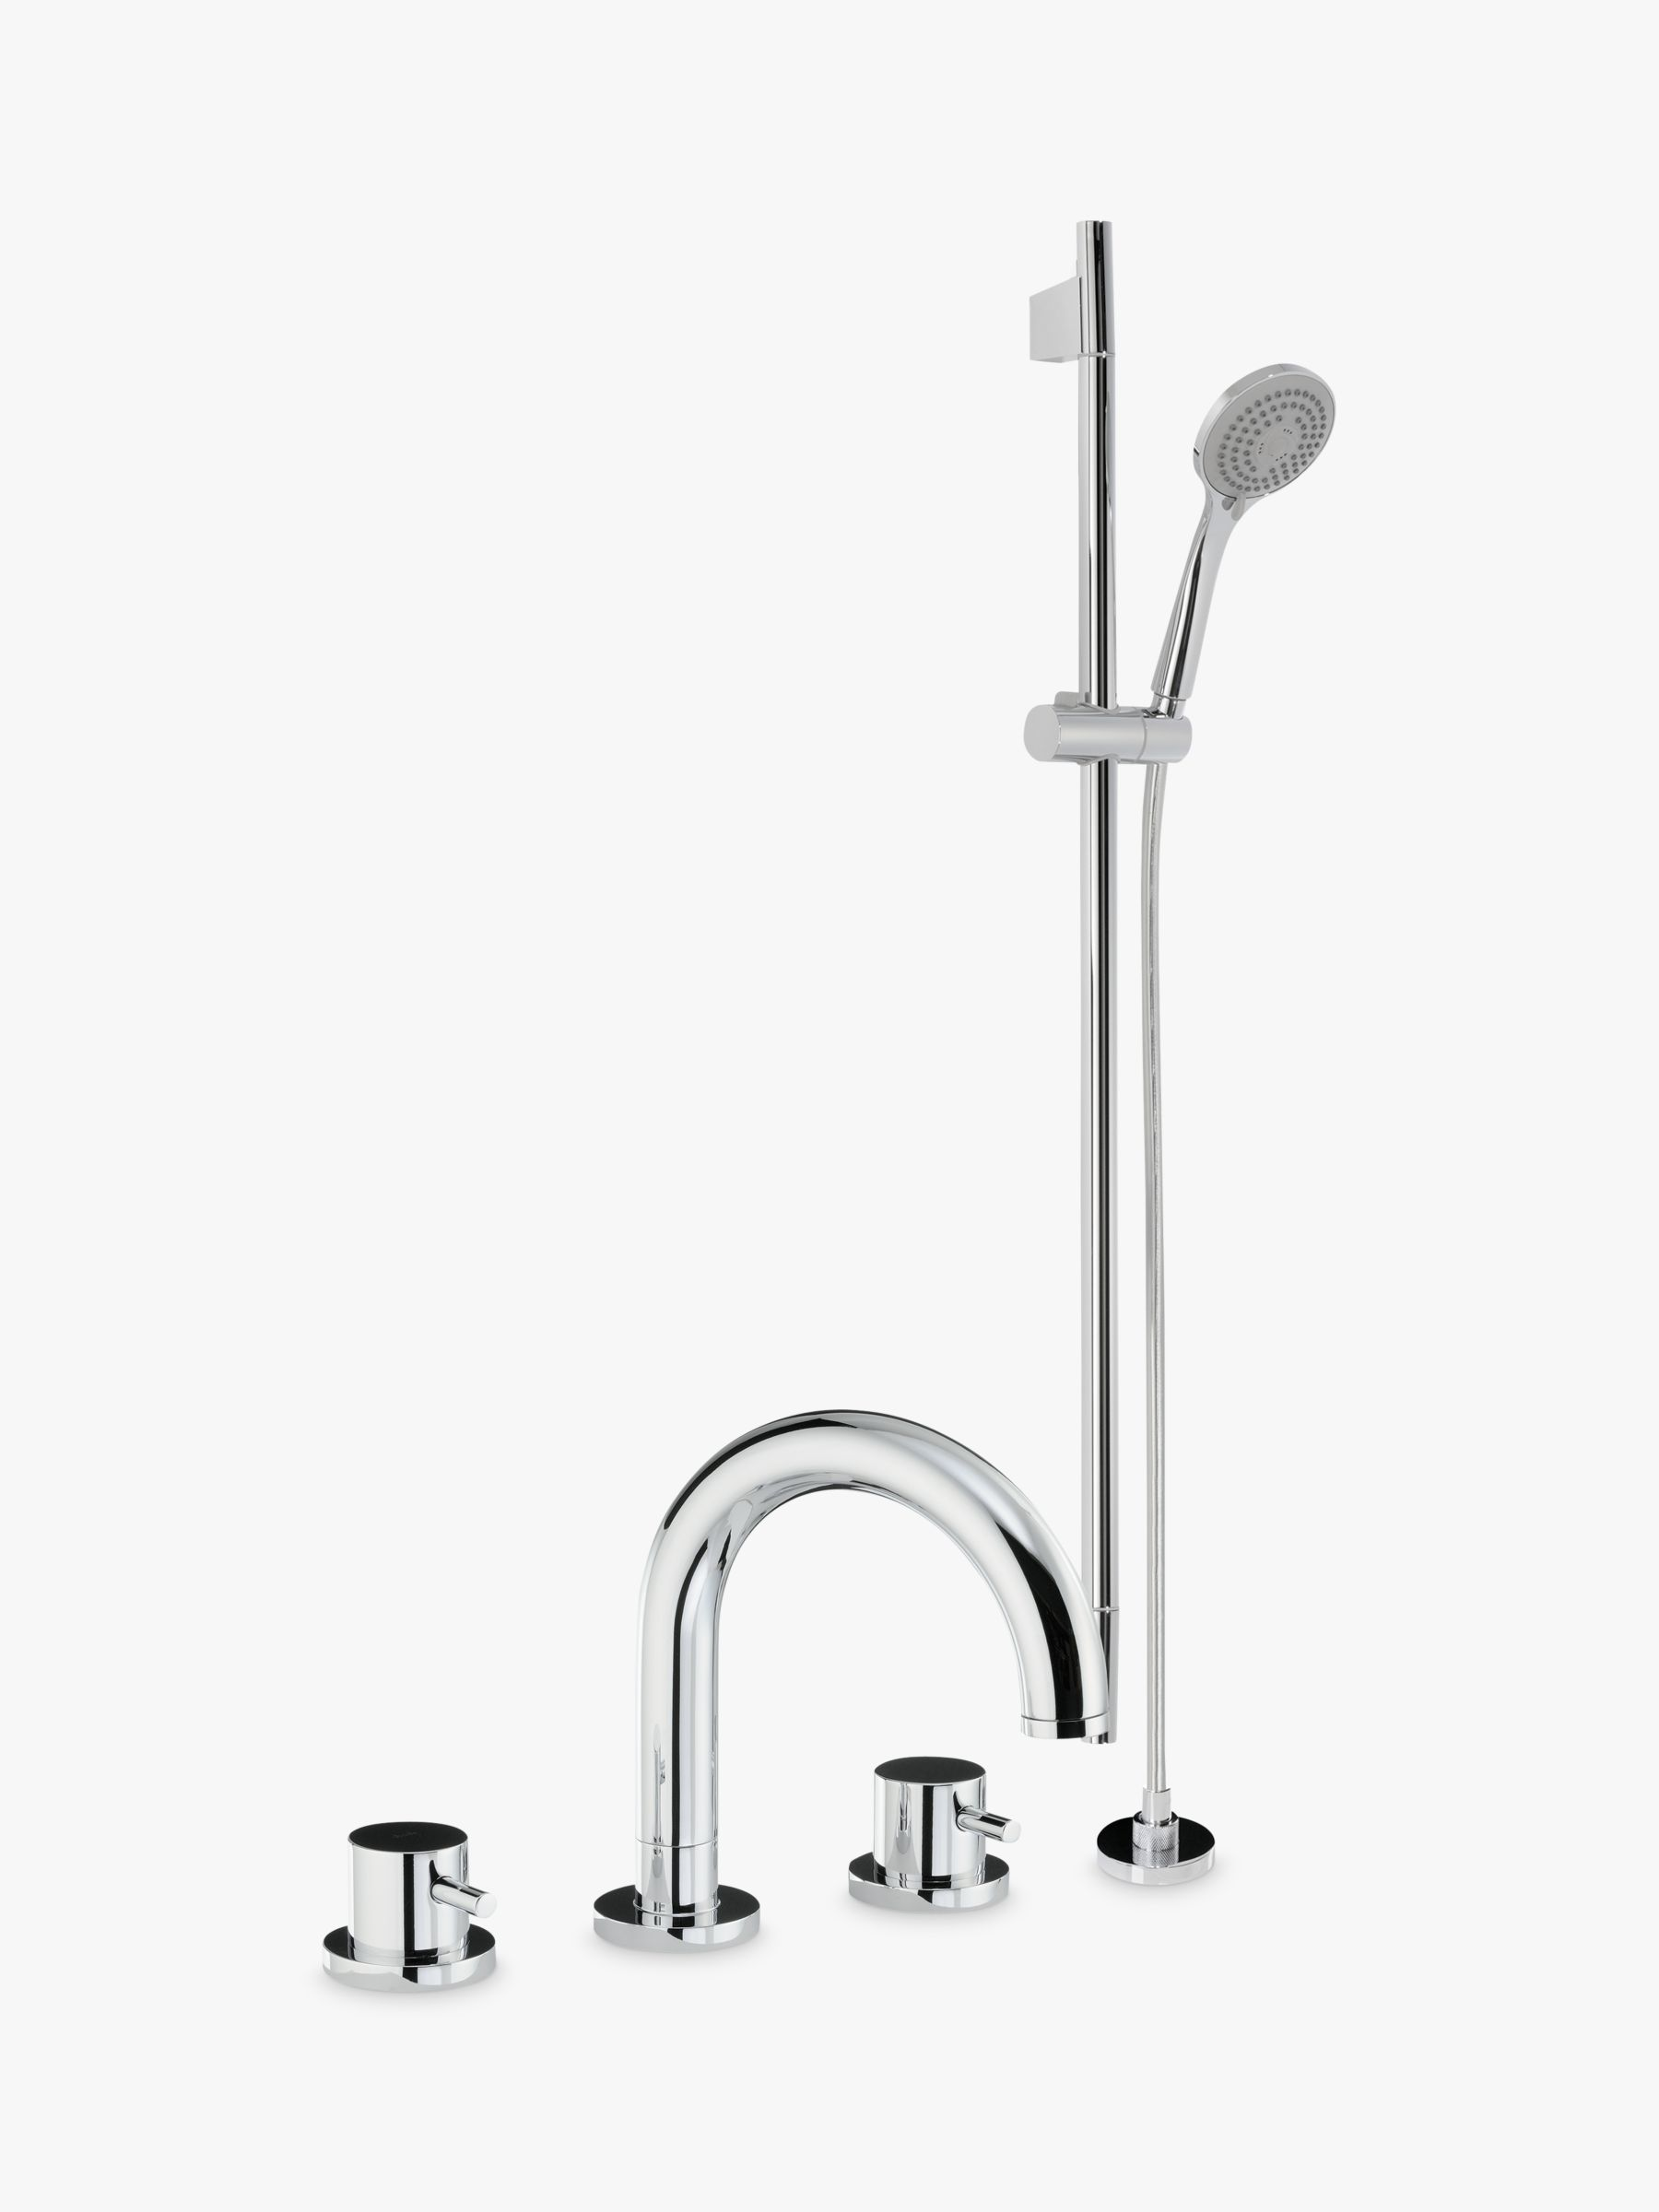 Abode Abode Harmonie Thermostatic Deck Mounted 3 Hole Bathroom Tap and Shower Mixer and Sliding Rail Kit